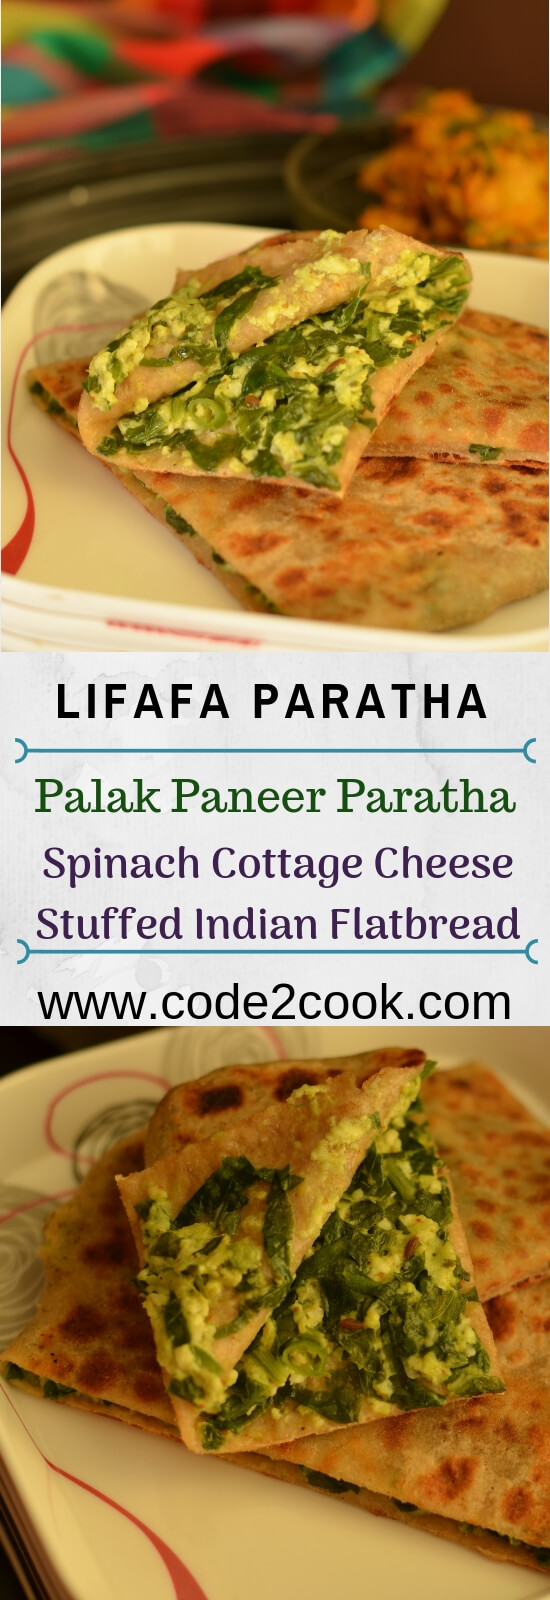 Lifafa paratha or Palak Paneer Lifafa Paratha is a paratha which is of envelope shape and stuffed with palak-paneer filling. Lifafa means envelop or pocket. Filling seasoned with spices, stuffed in the roti(flatbread), sealed like an envelope before cooking on stove top. Basically, a roti folded into a lifafa or pocket shape with filling inside.